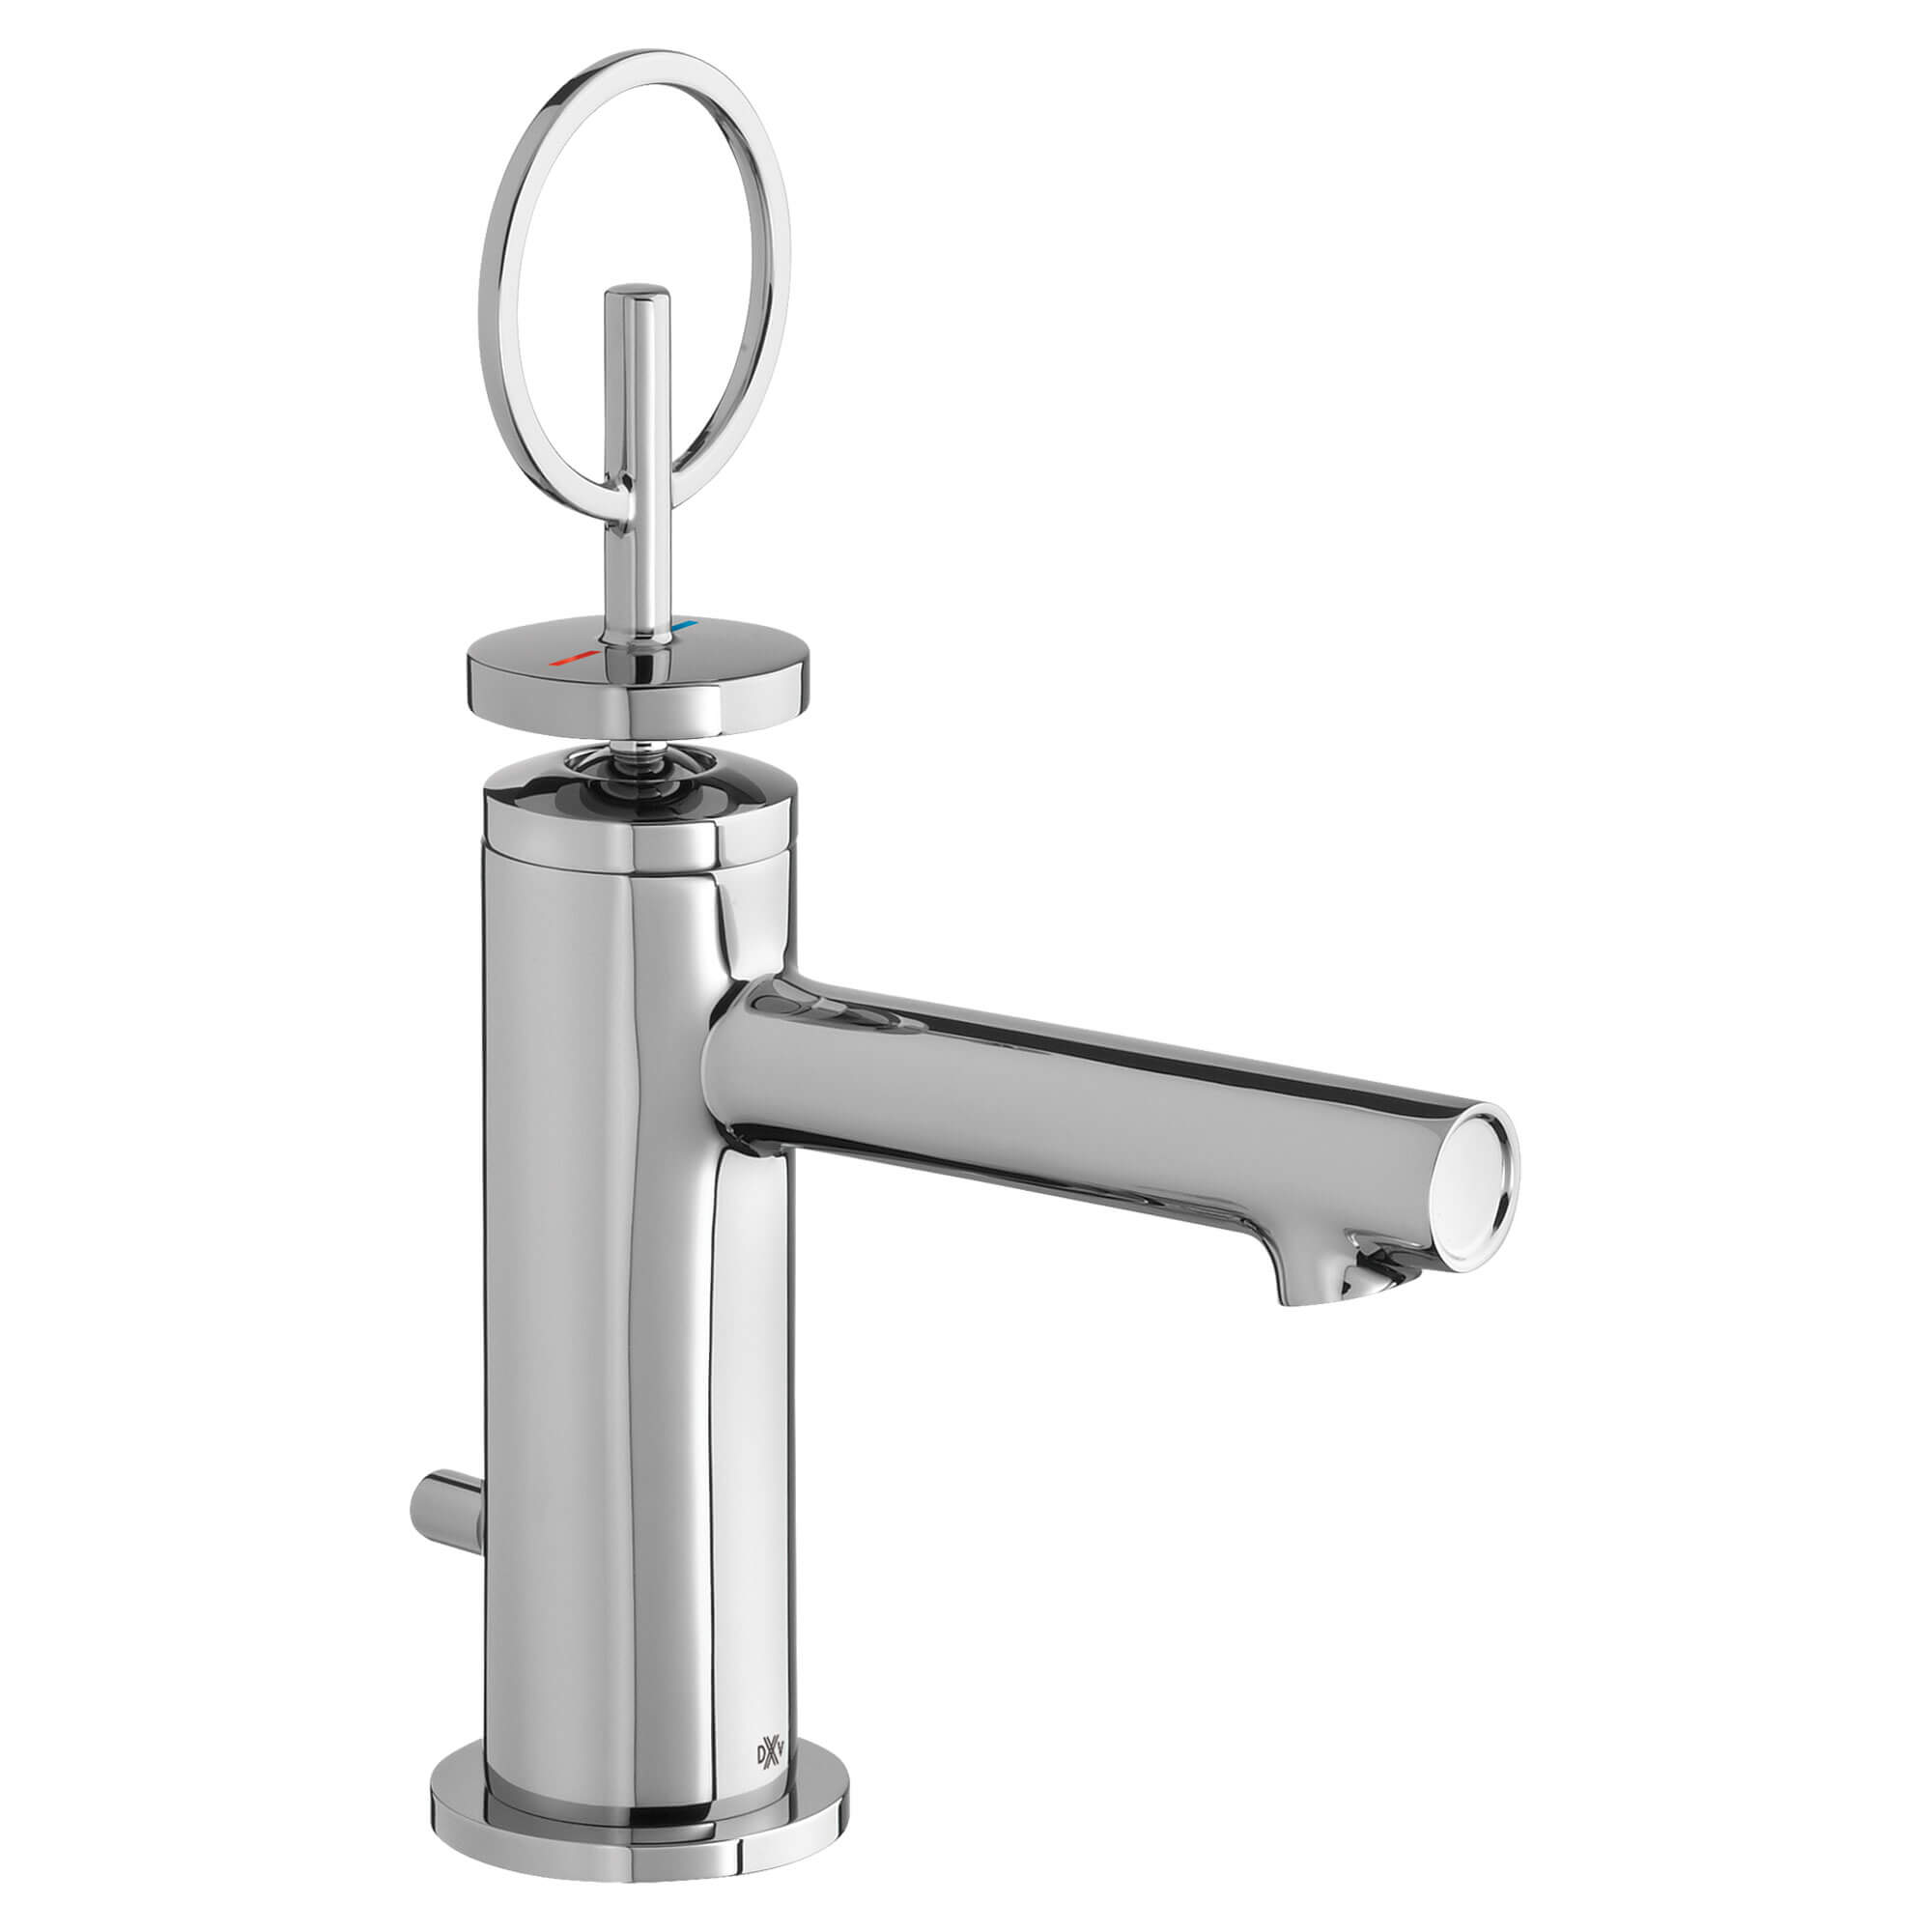 Percy Single Handle Bathroom Faucet with Loop Handle - Projects Model